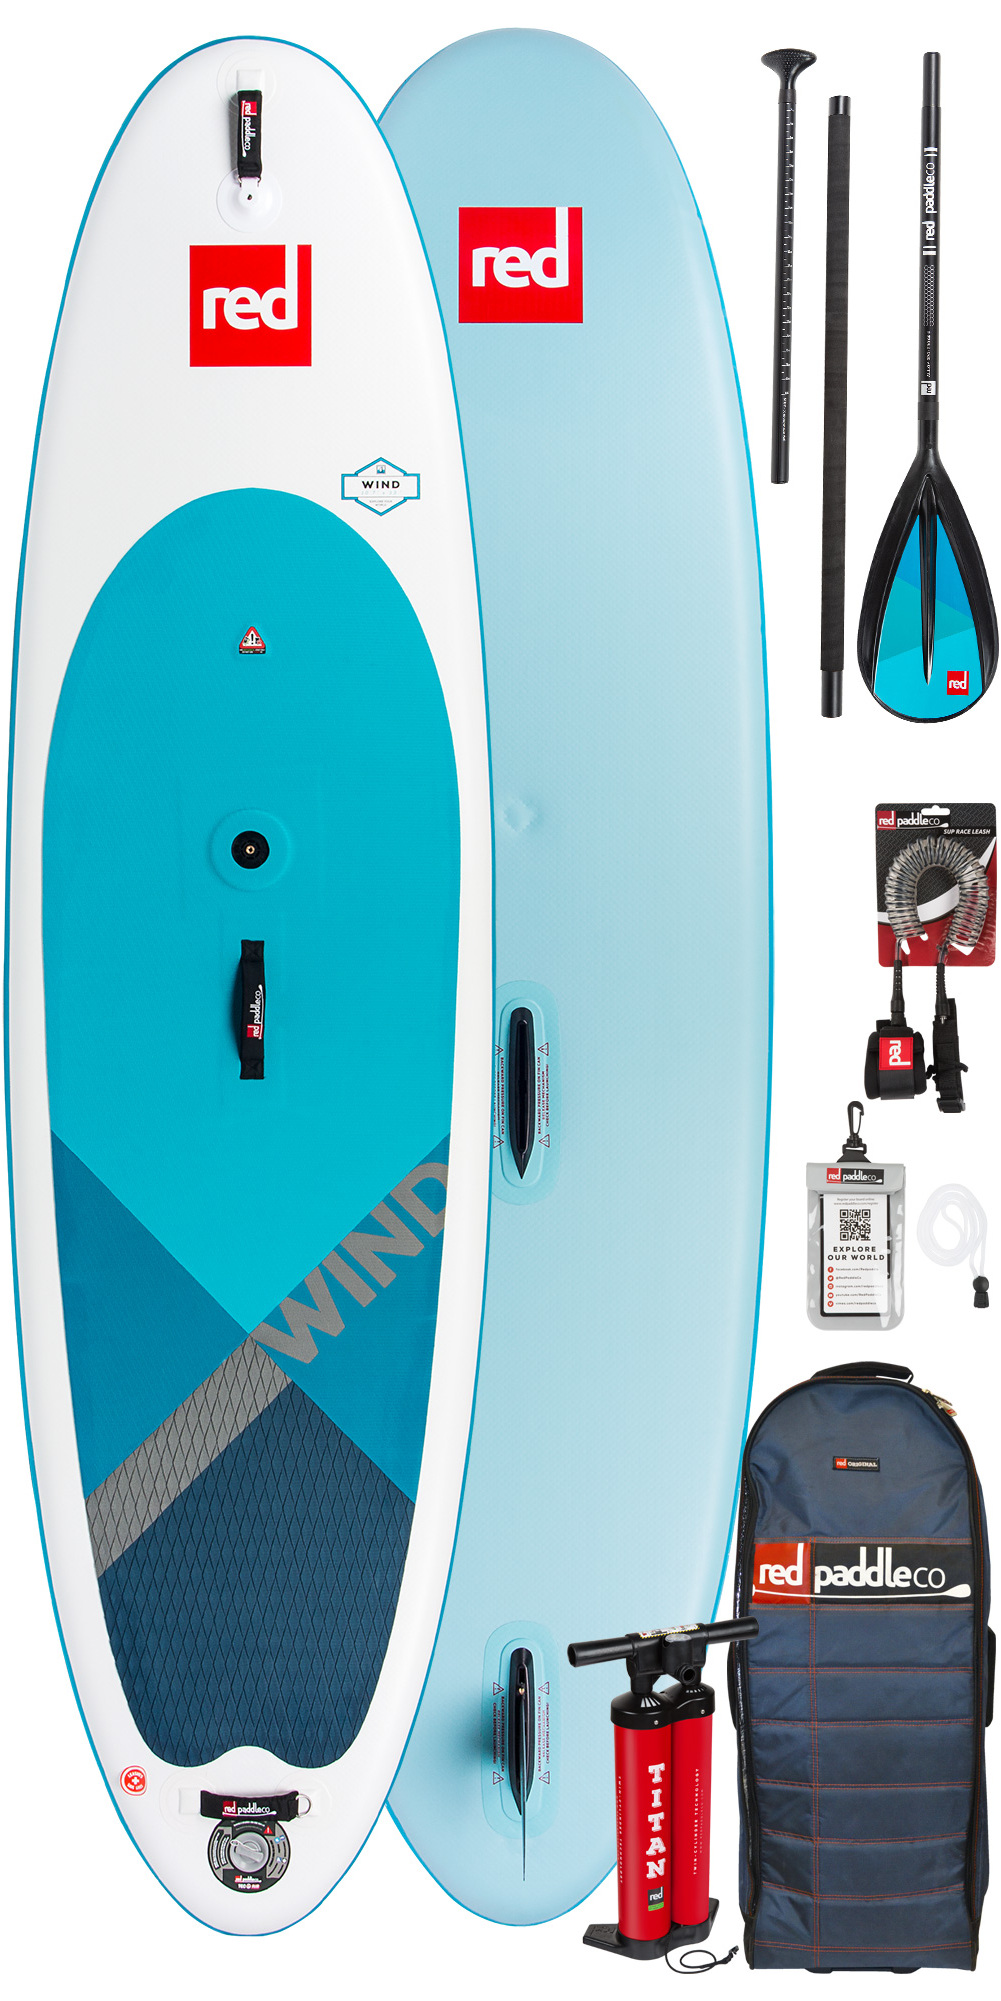 Red Paddle Co WindSUP 10'7 Hinchable Stand Up Paddle Board + Bolsa, bomba, paleta y correa